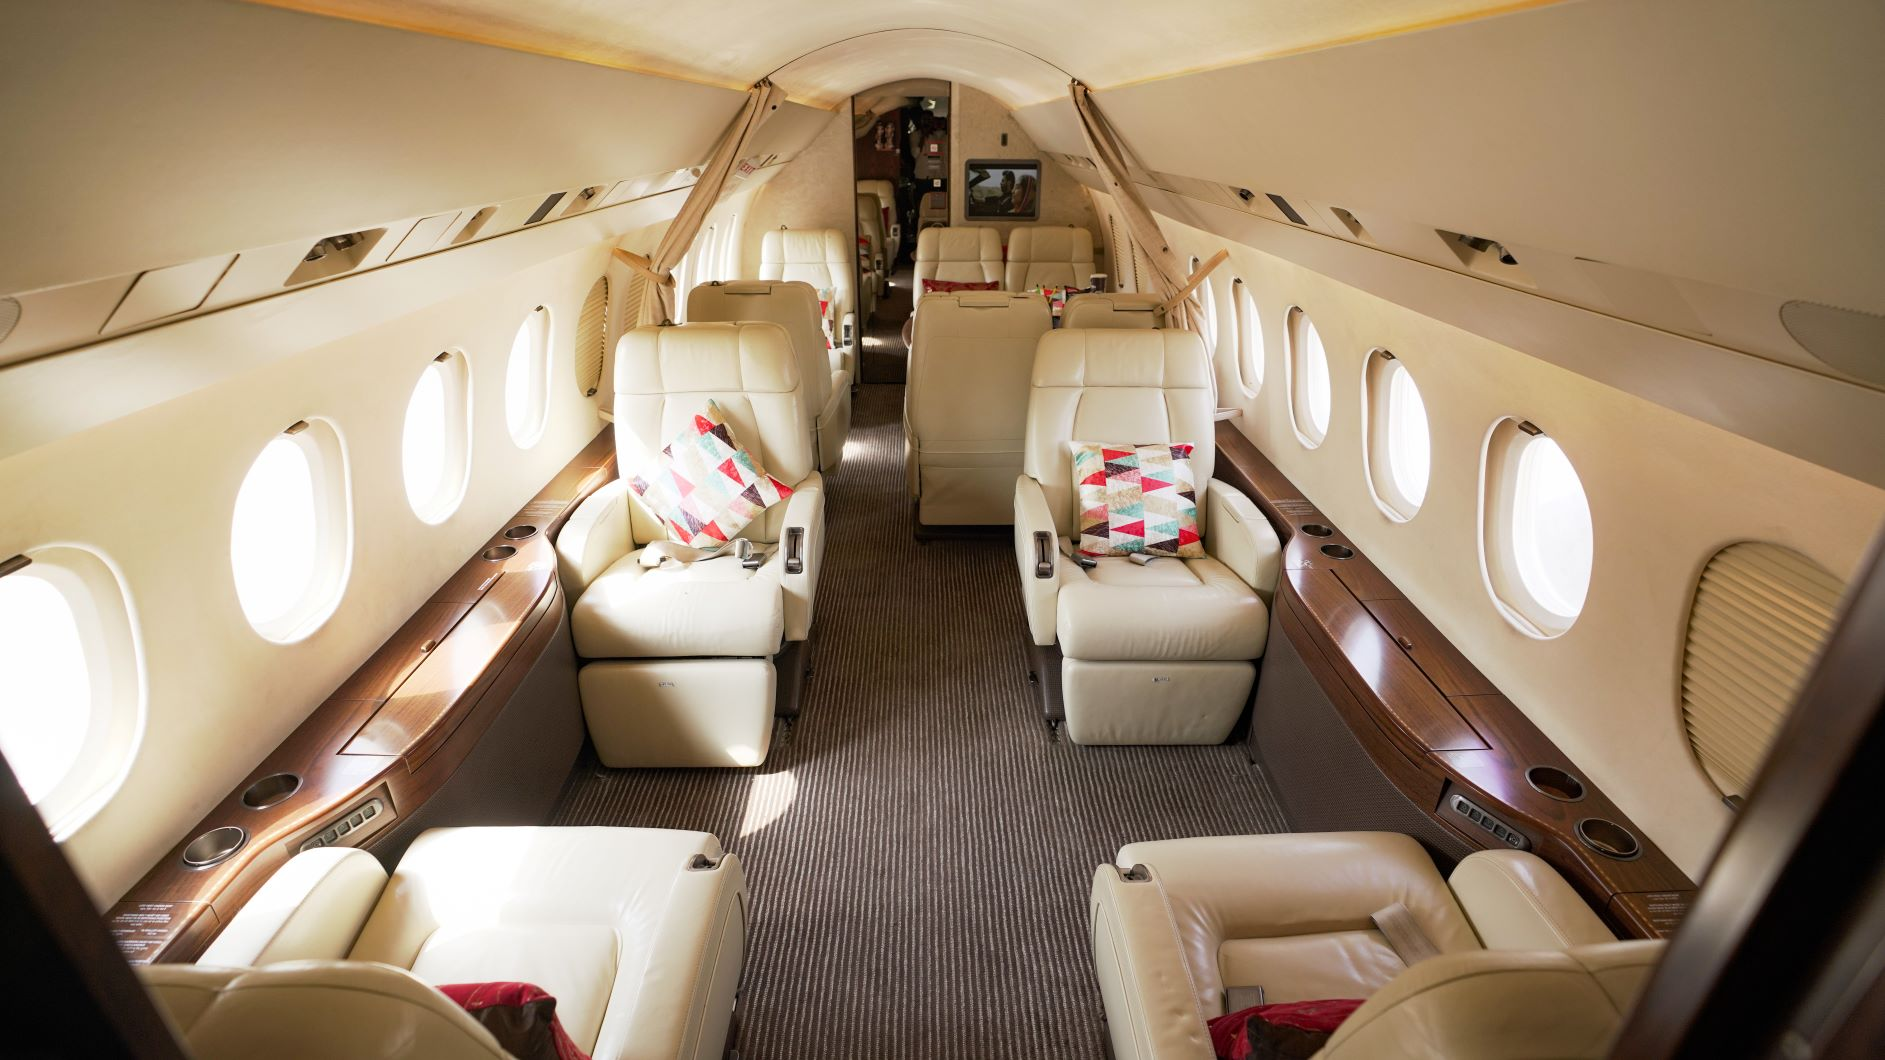 HOW MUCH LUGGAGE SPACE IS IN A PRIVATE JET?